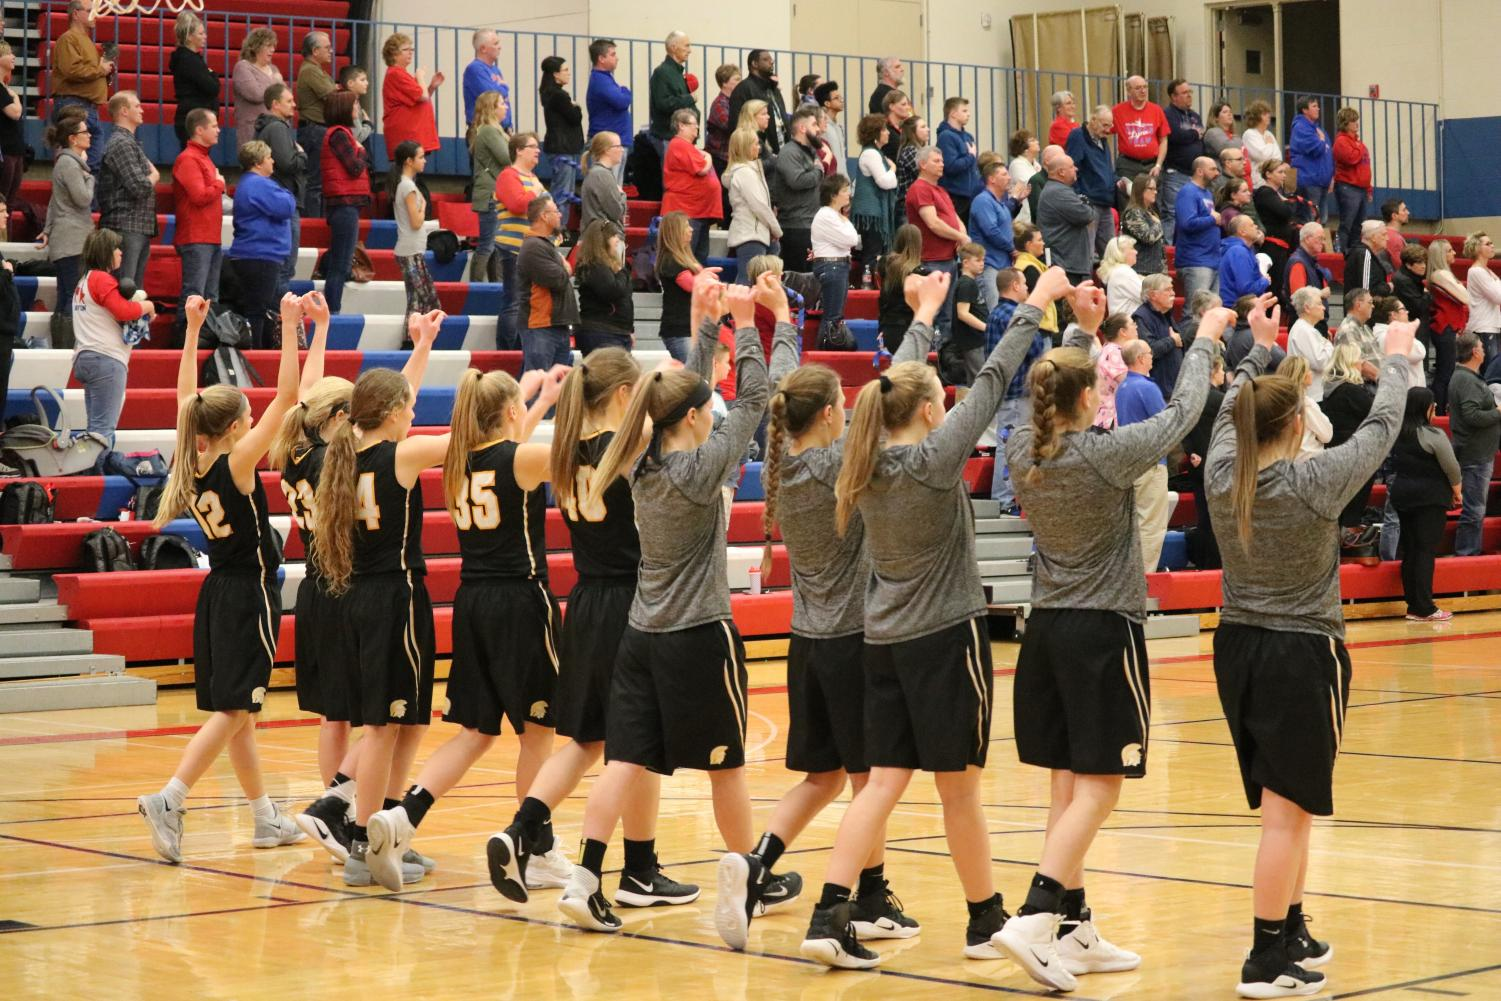 The varsity girls throw their hands in the air after the conclusion of the National Anthem. The win against Council Bluffs Abraham Lincoln is third of the season for the Trojan girls, as they have also topped Saint Albert and Clarinda this year.